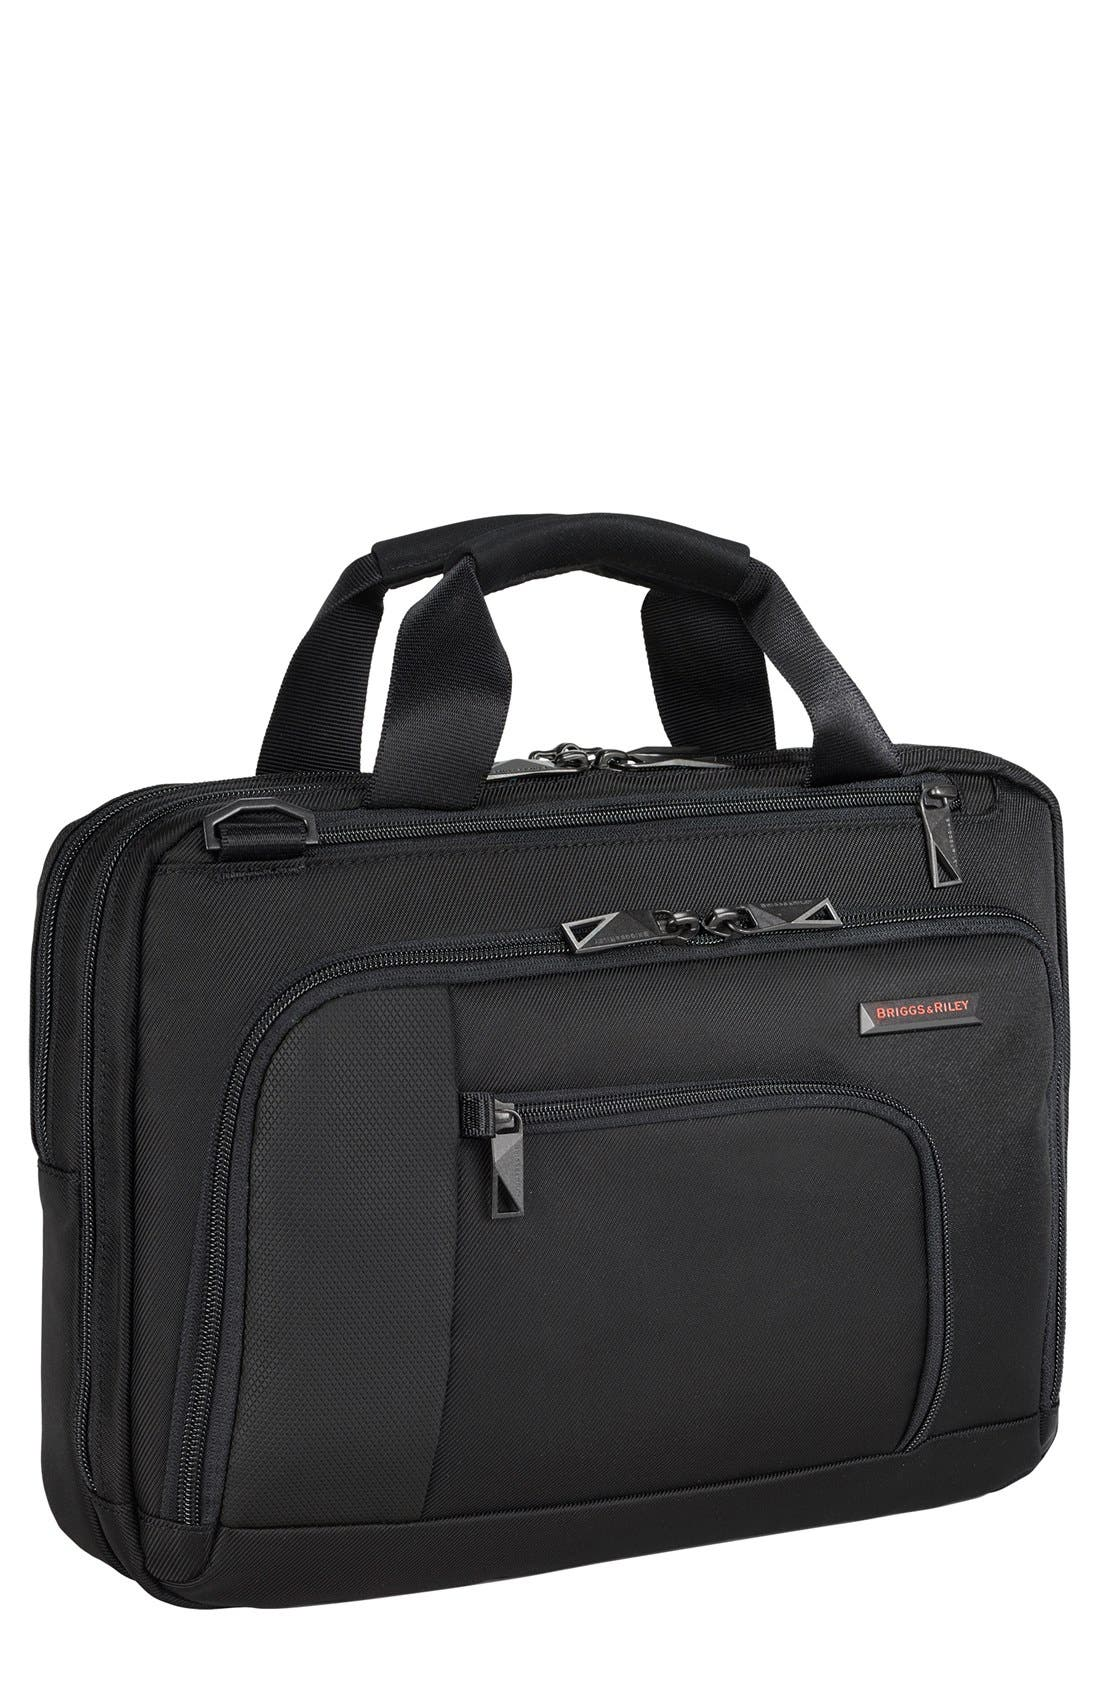 BRIGGS & RILEY, 'Verb - Contact' Small Briefcase, Main thumbnail 1, color, BLACK